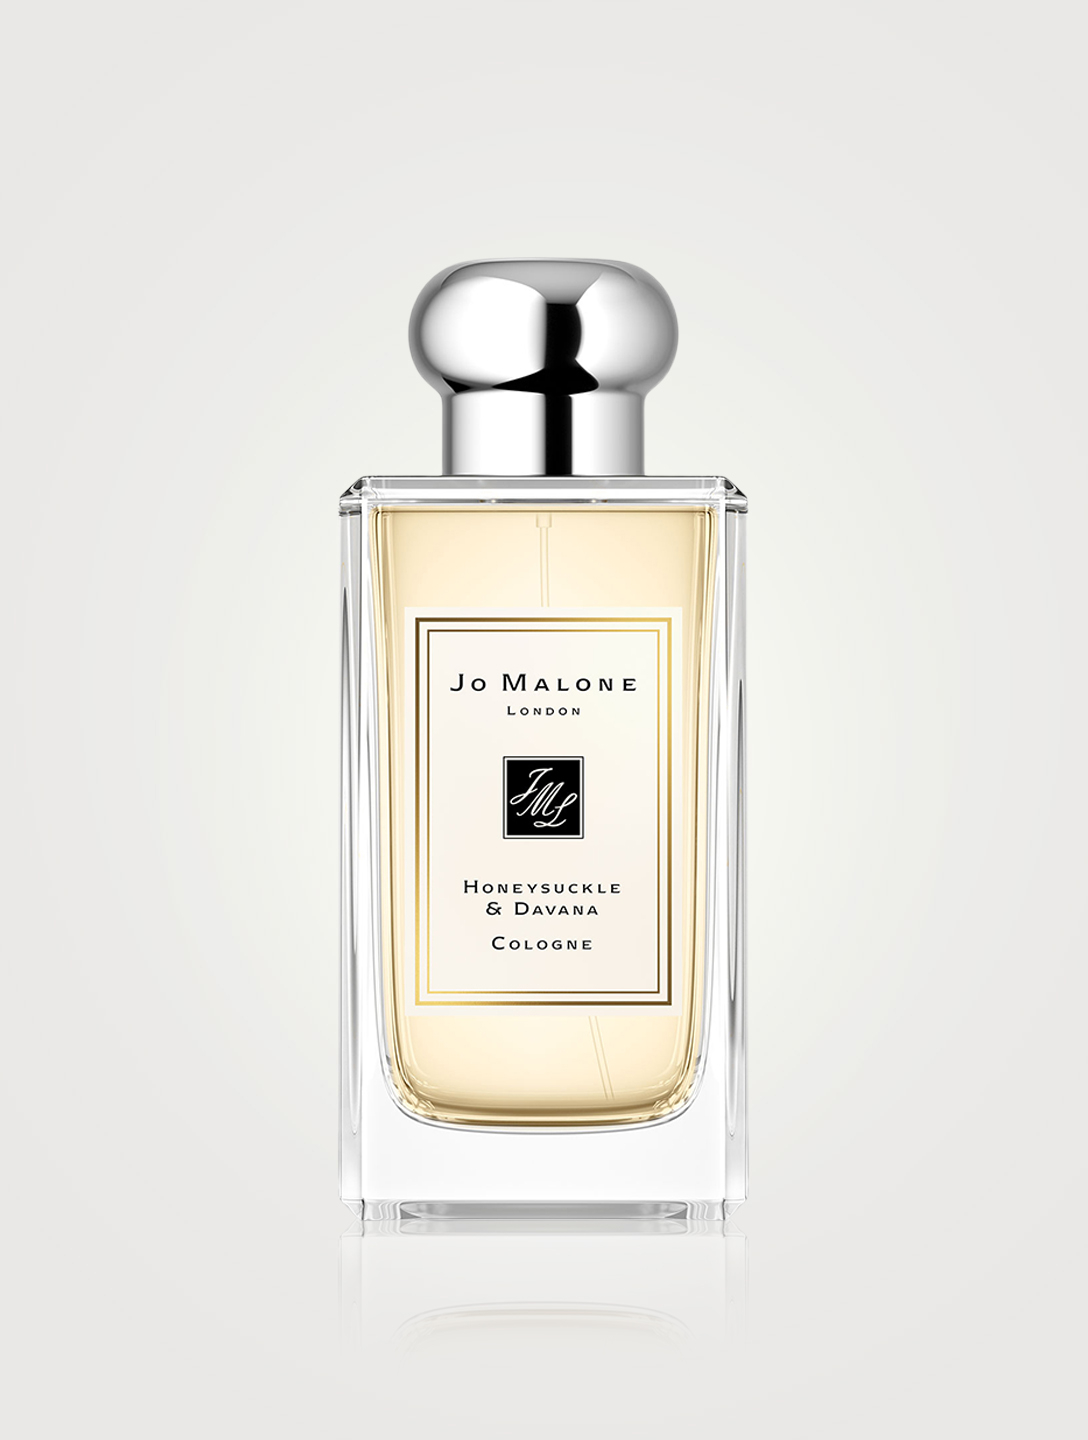 JO MALONE LONDON Honeysuckle & Davana Cologne Collections